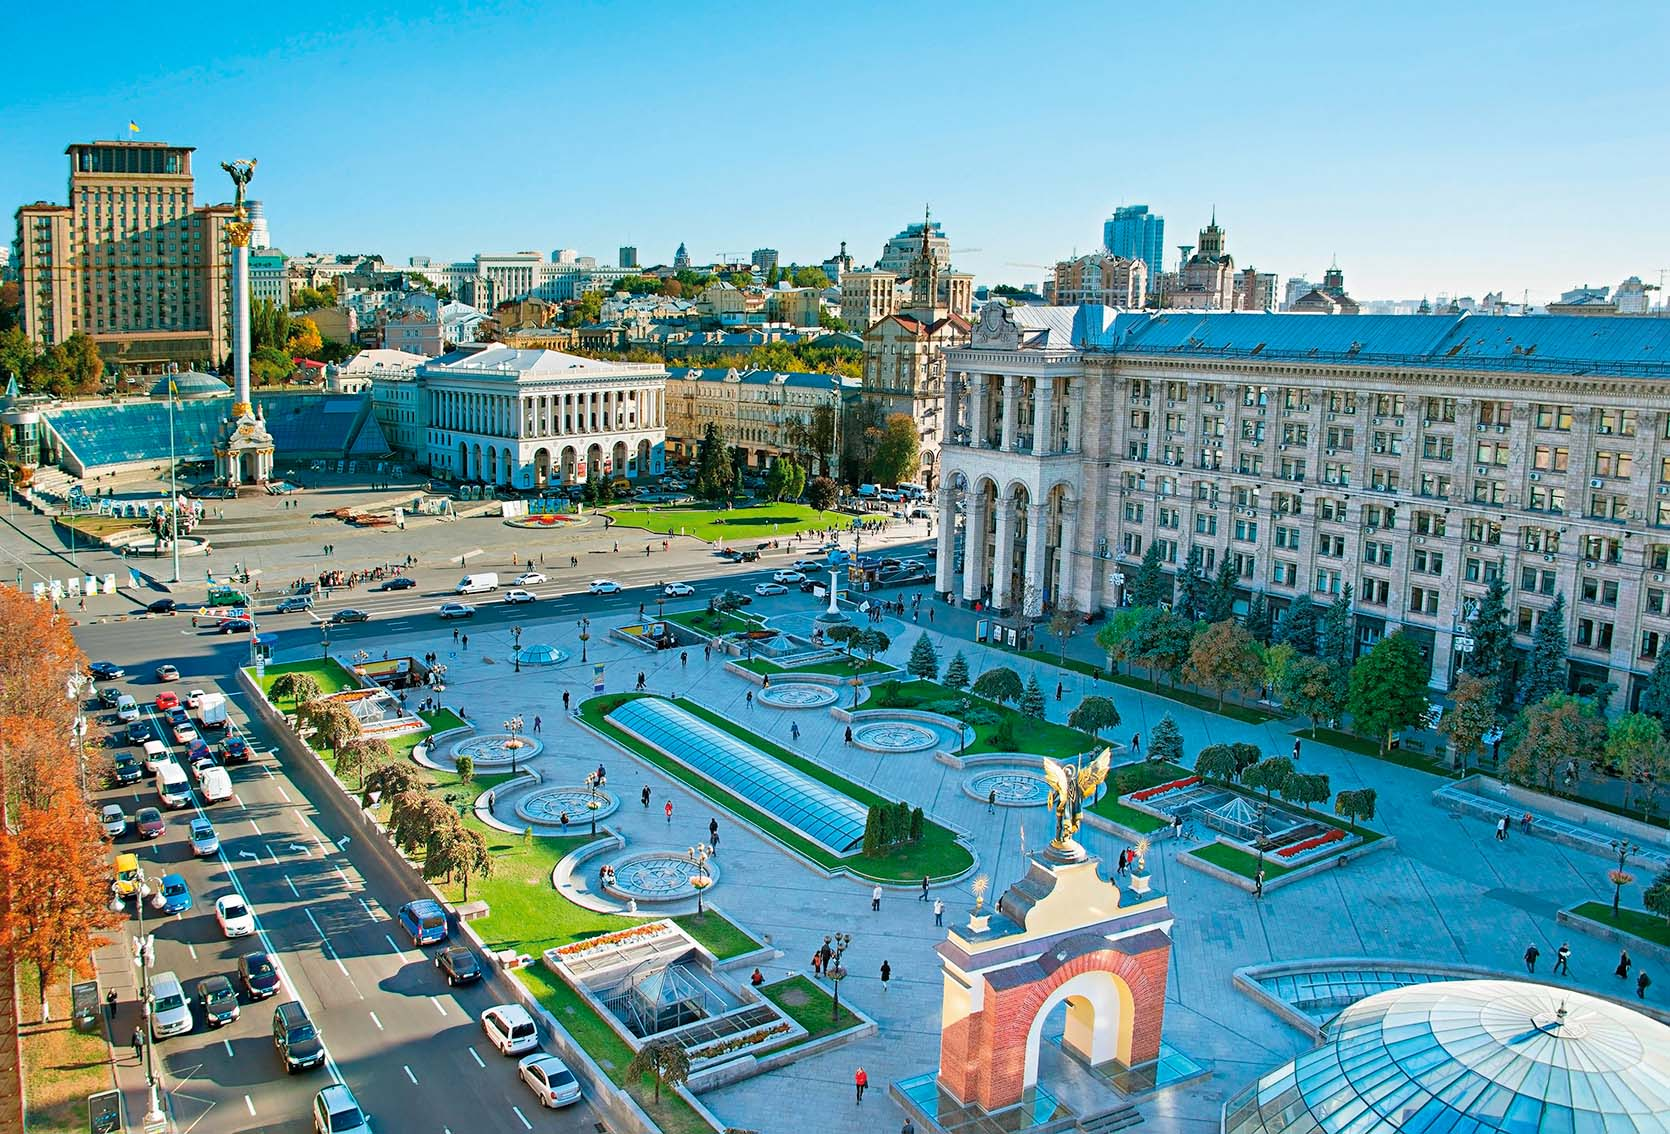 View from above of Independence Square (Maidan Nezalezhnosti) in Kiev, Ukraine, Image: 319172585, License: Rights-managed, Restrictions: , Model Release: no, Credit line: Profimedia, Alamy